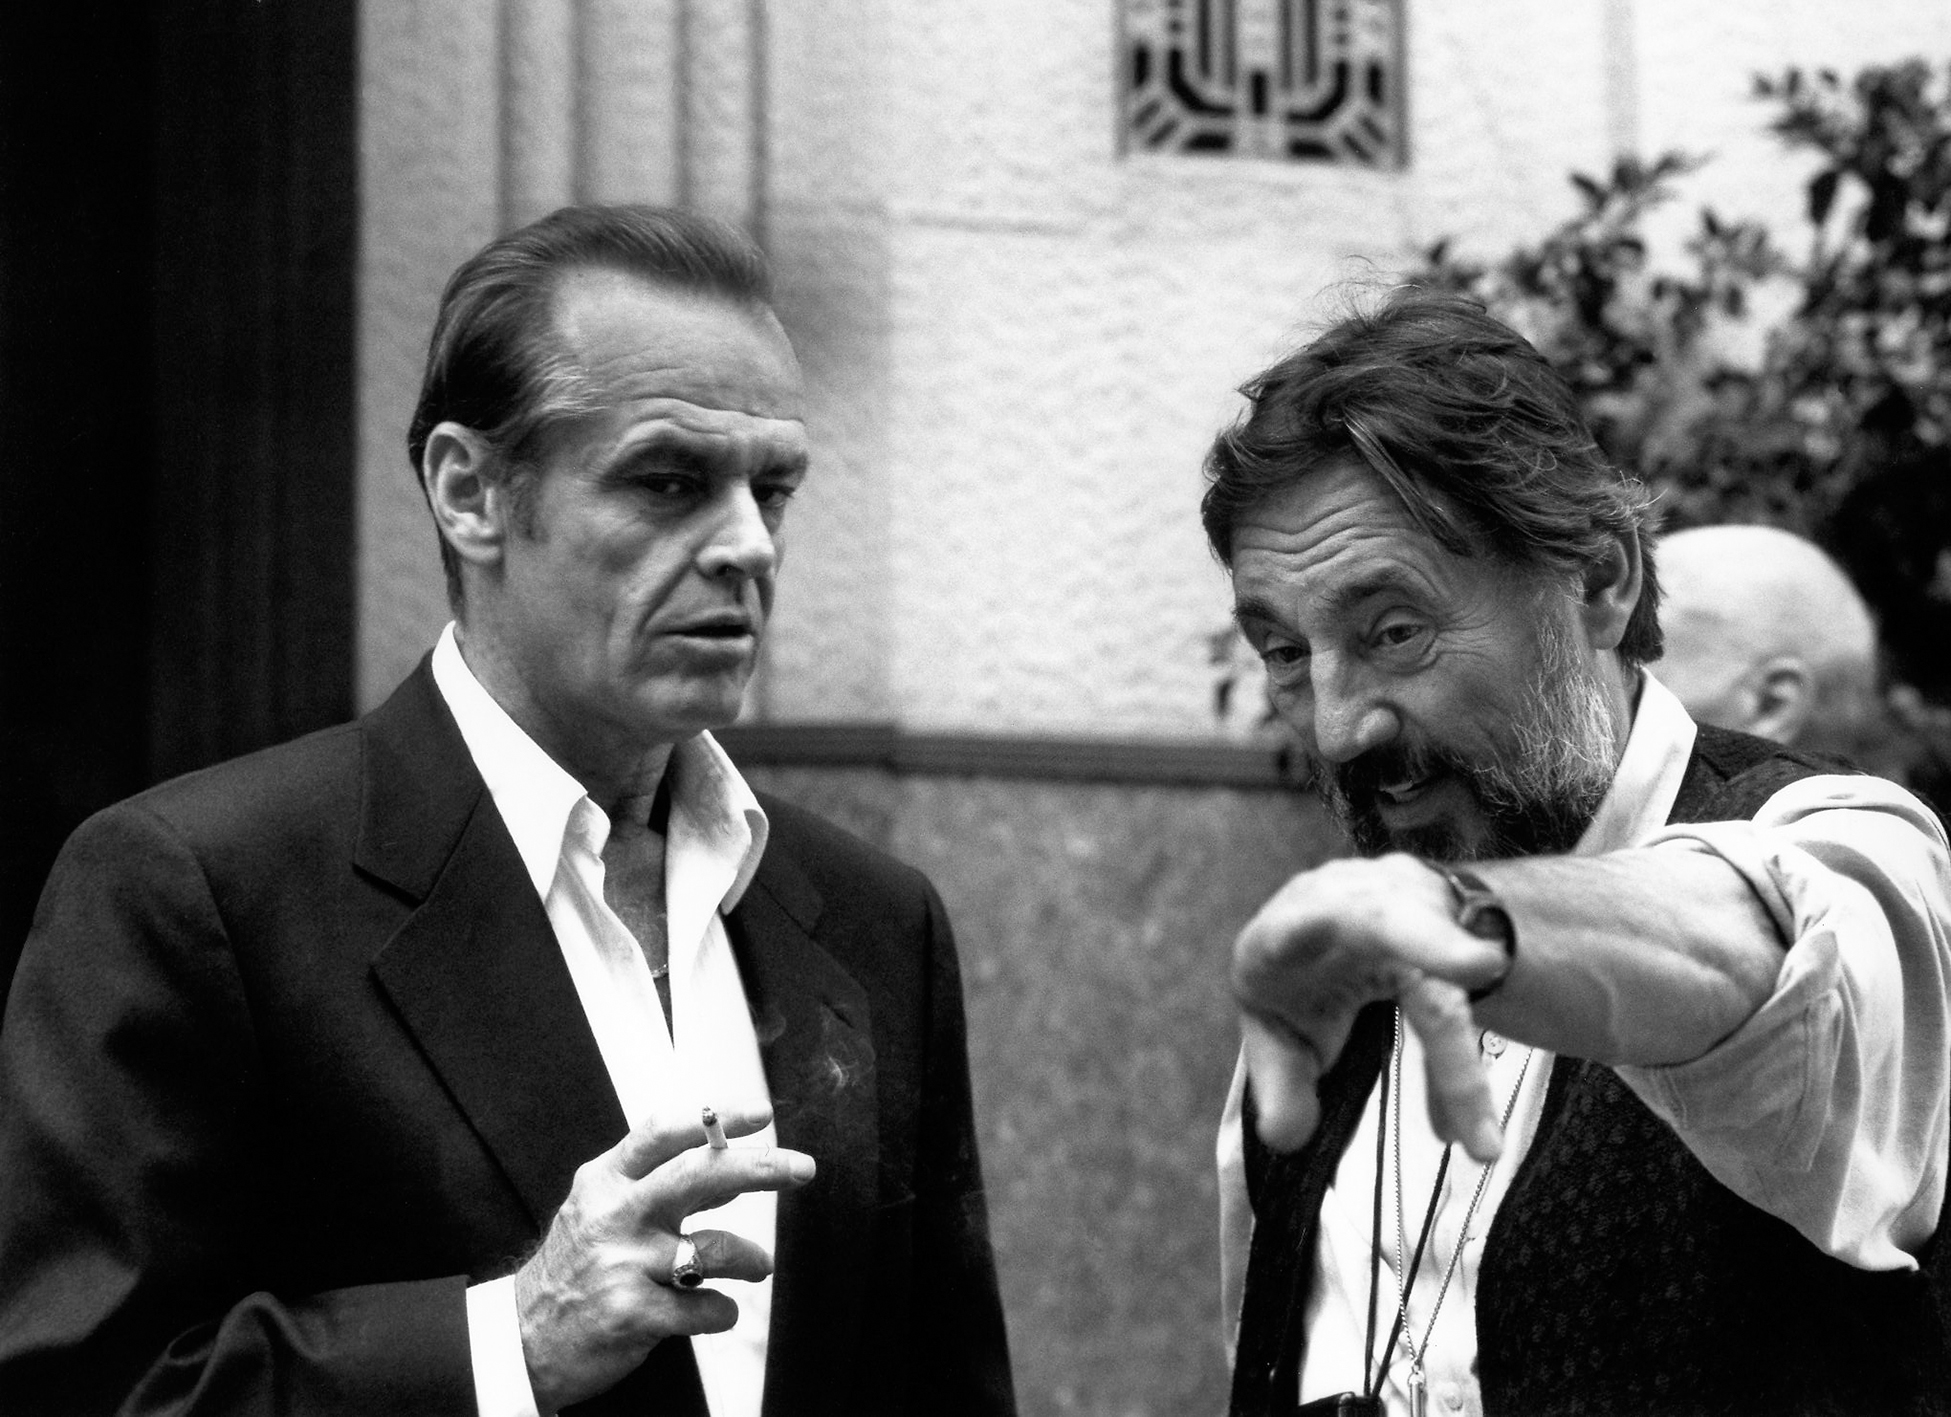 15_04_10_006_zsigmond_vilmos_the_two_jacks_w_jack_nicholson_1989.jpg